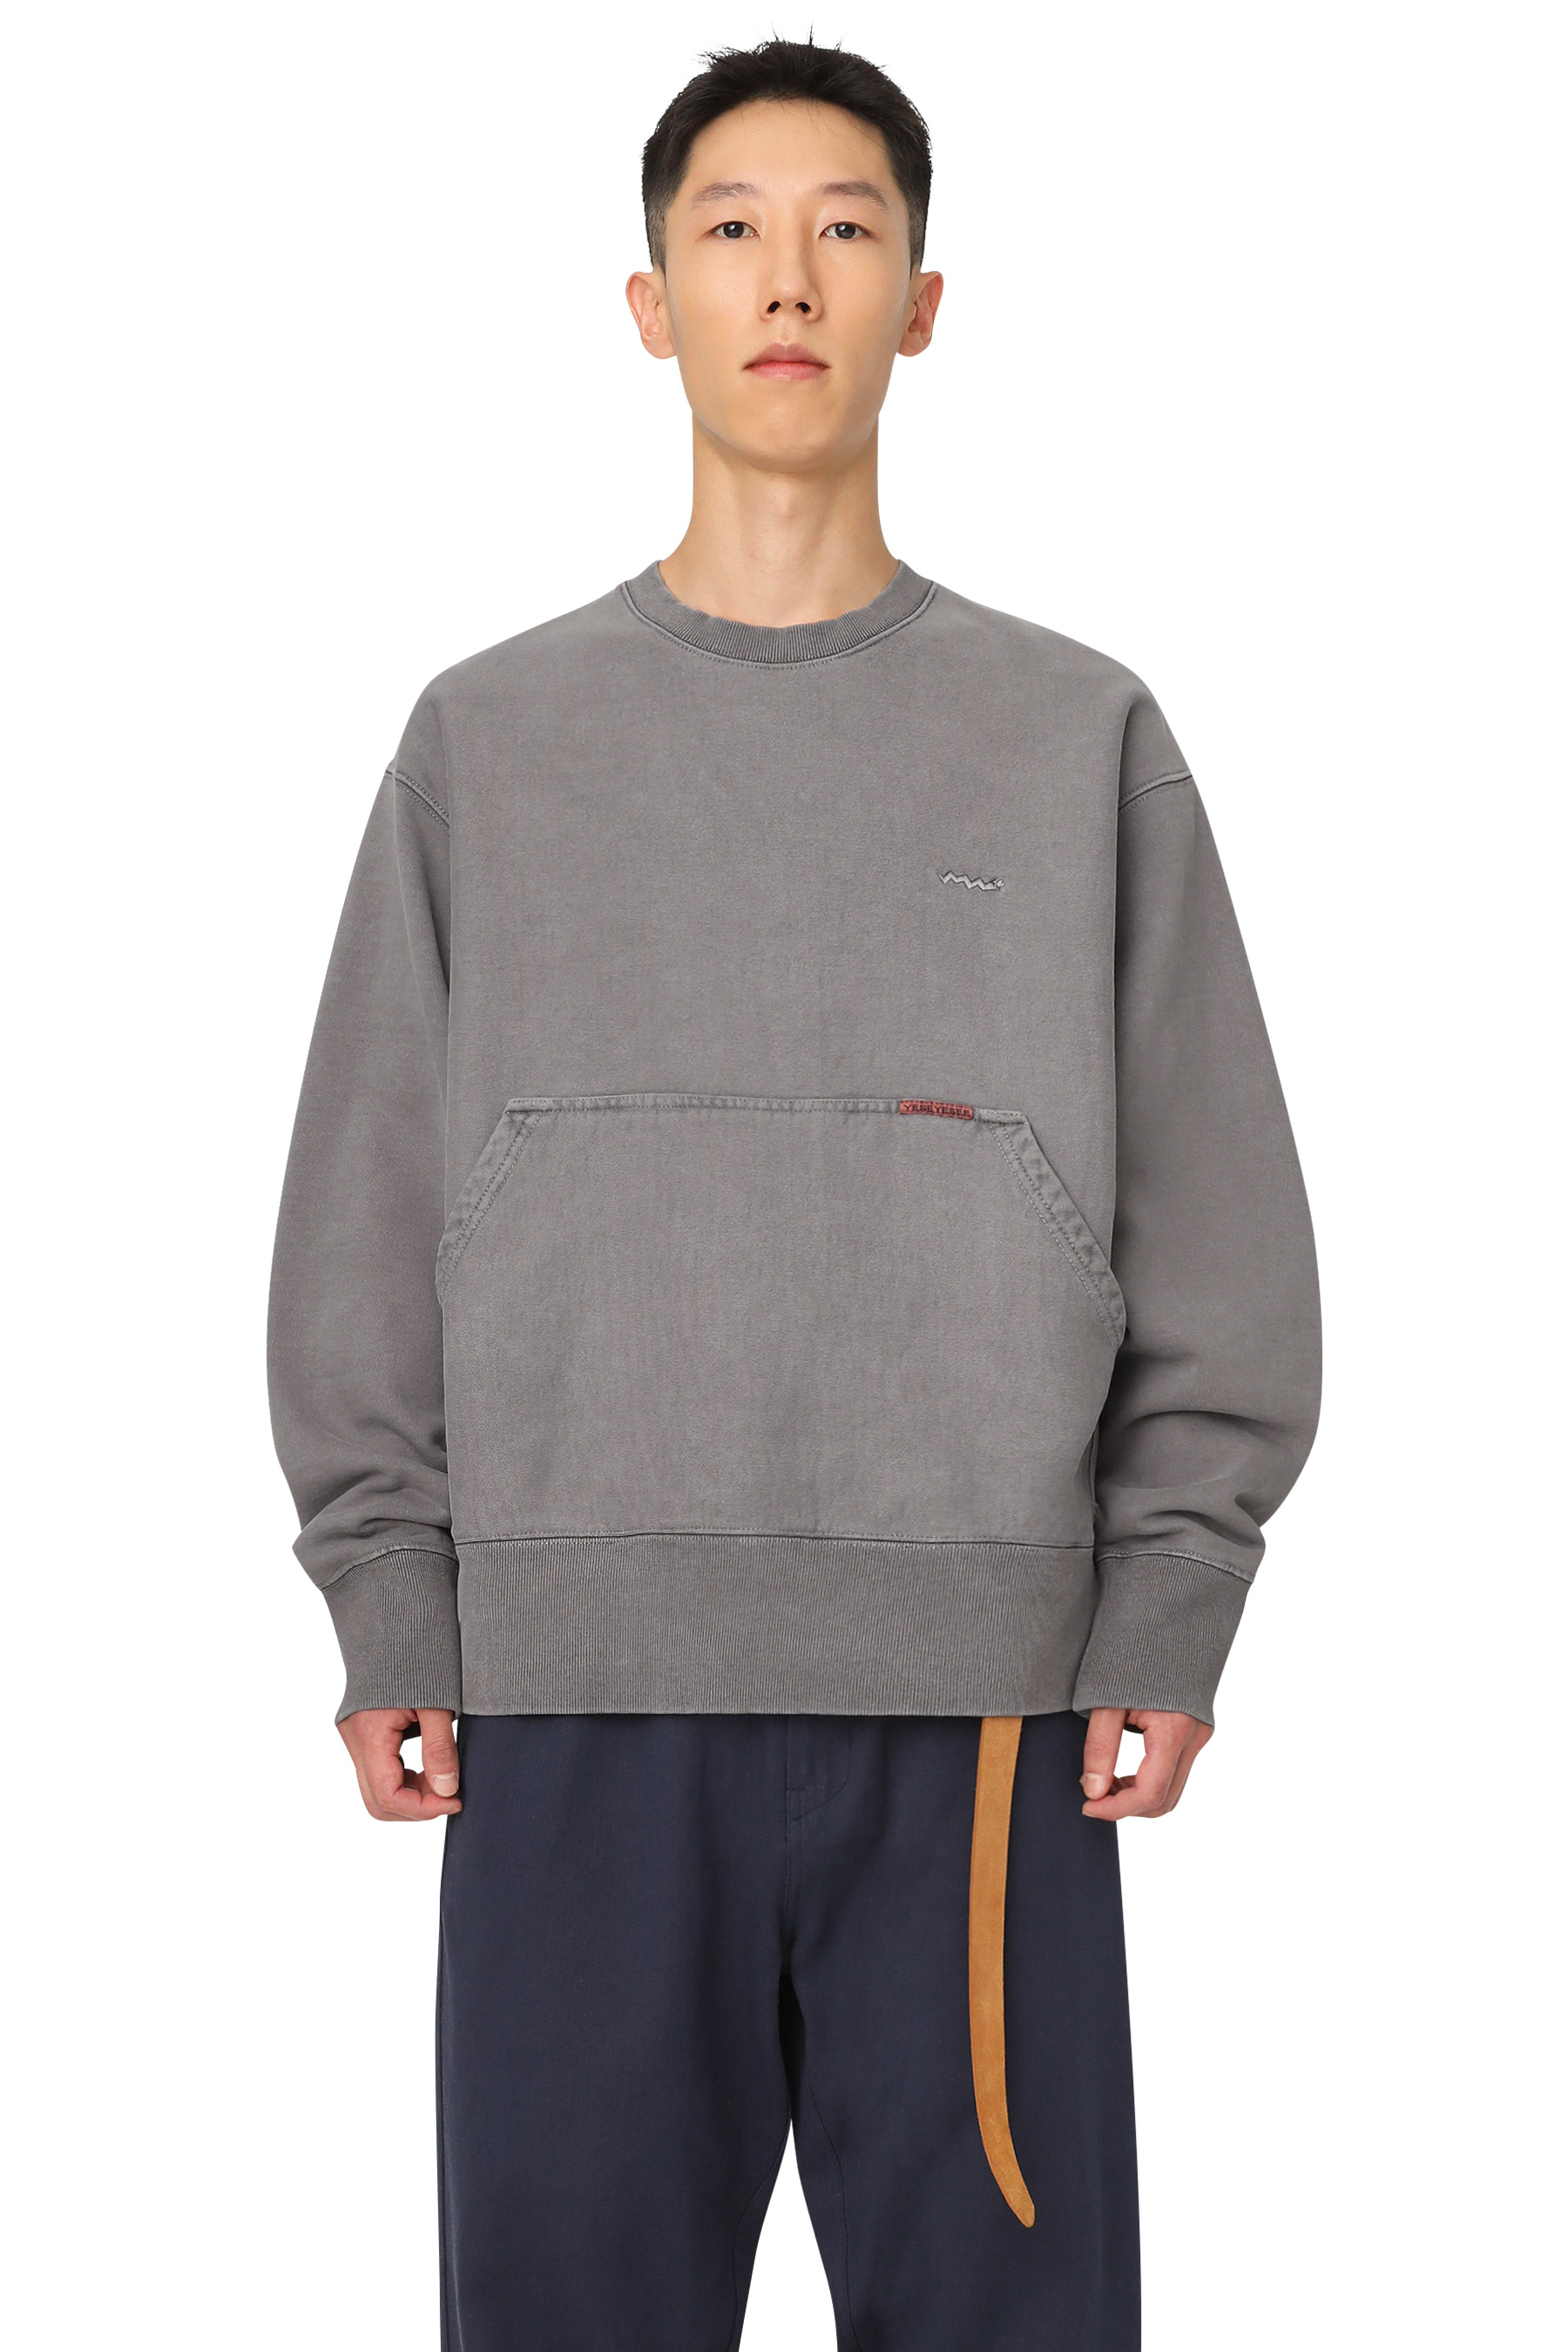 Y.E.S Pig Dyed Sweatshirts Charcoal